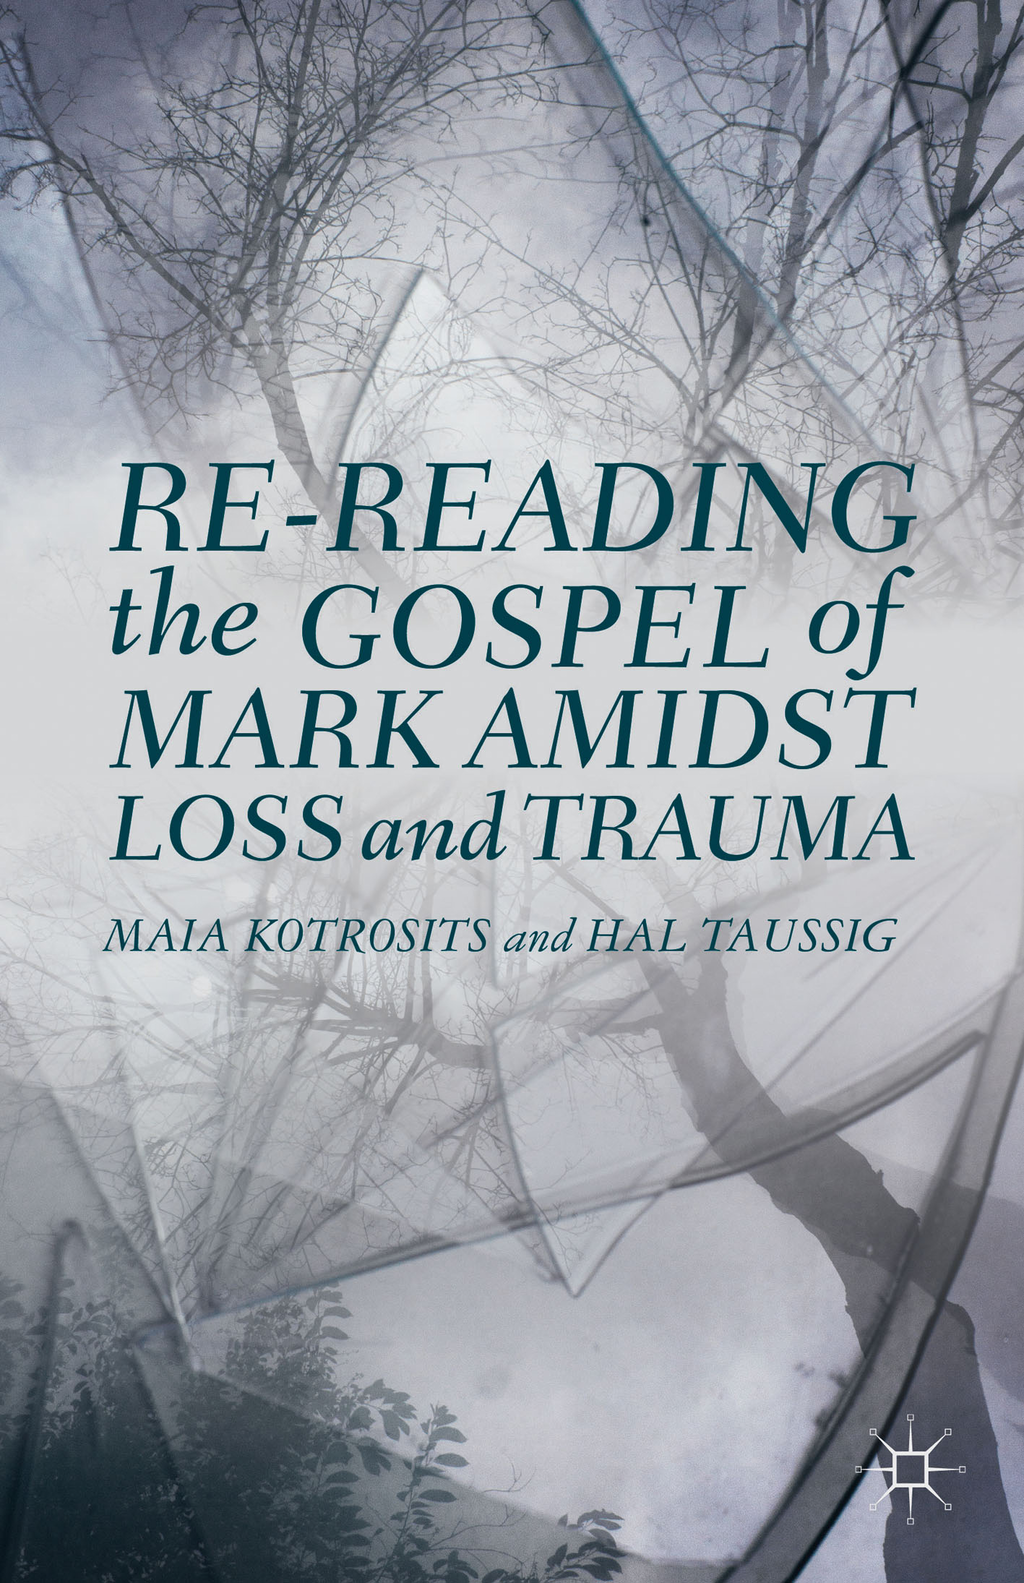 Re-reading the Gospel of Mark Amidst Loss and Trauma